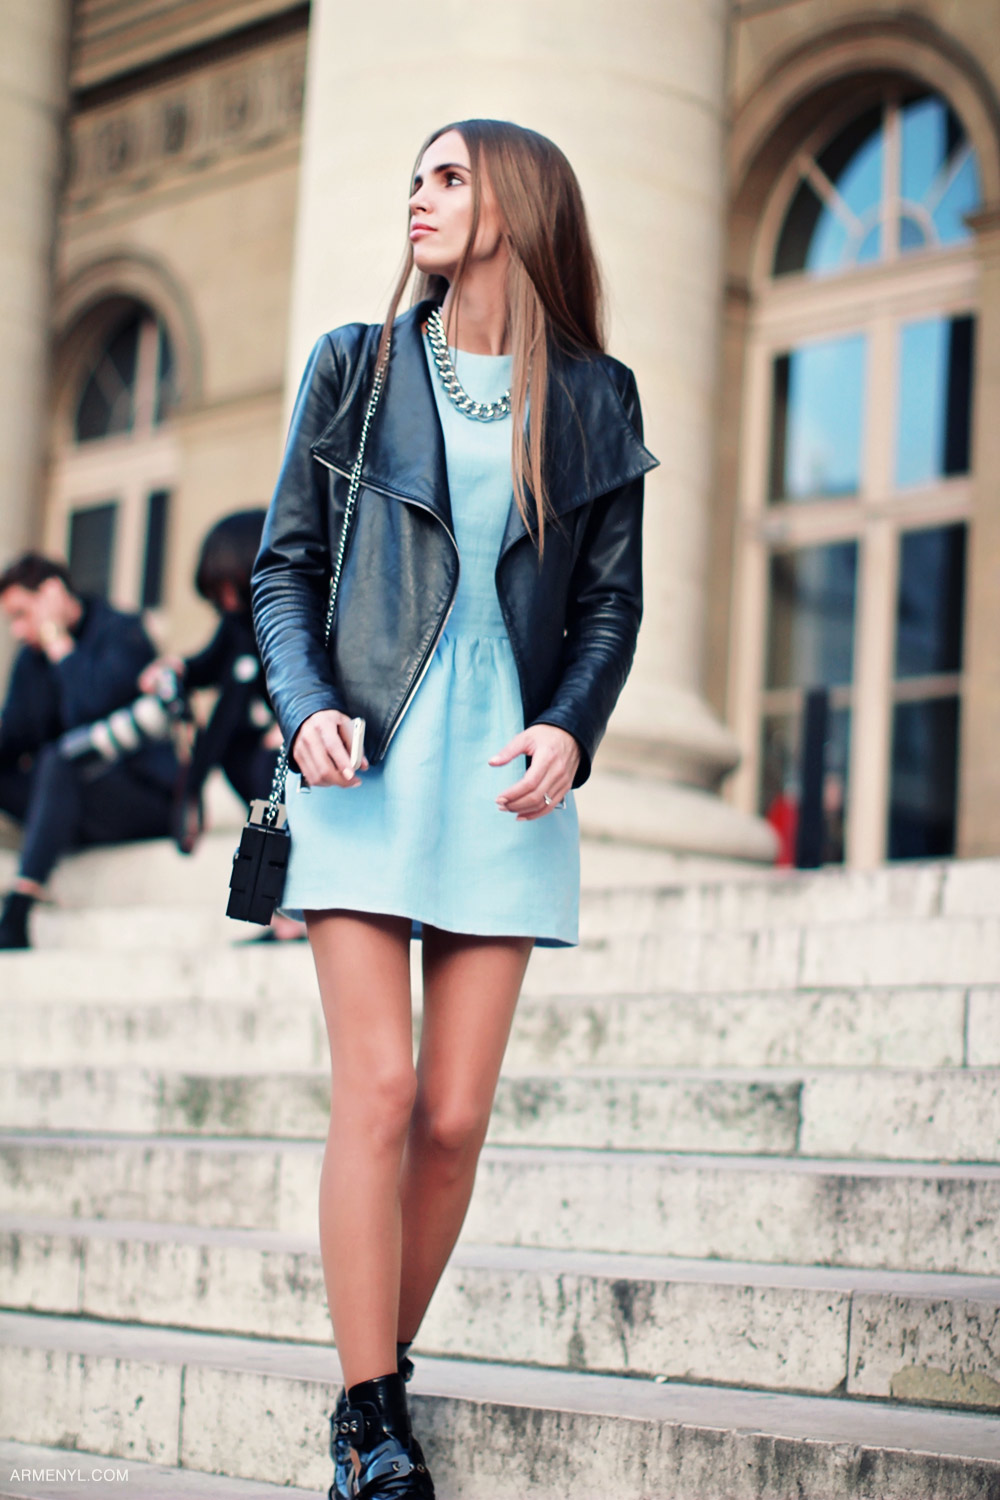 Fashion-Street-Style-Photo-by-Armenyl